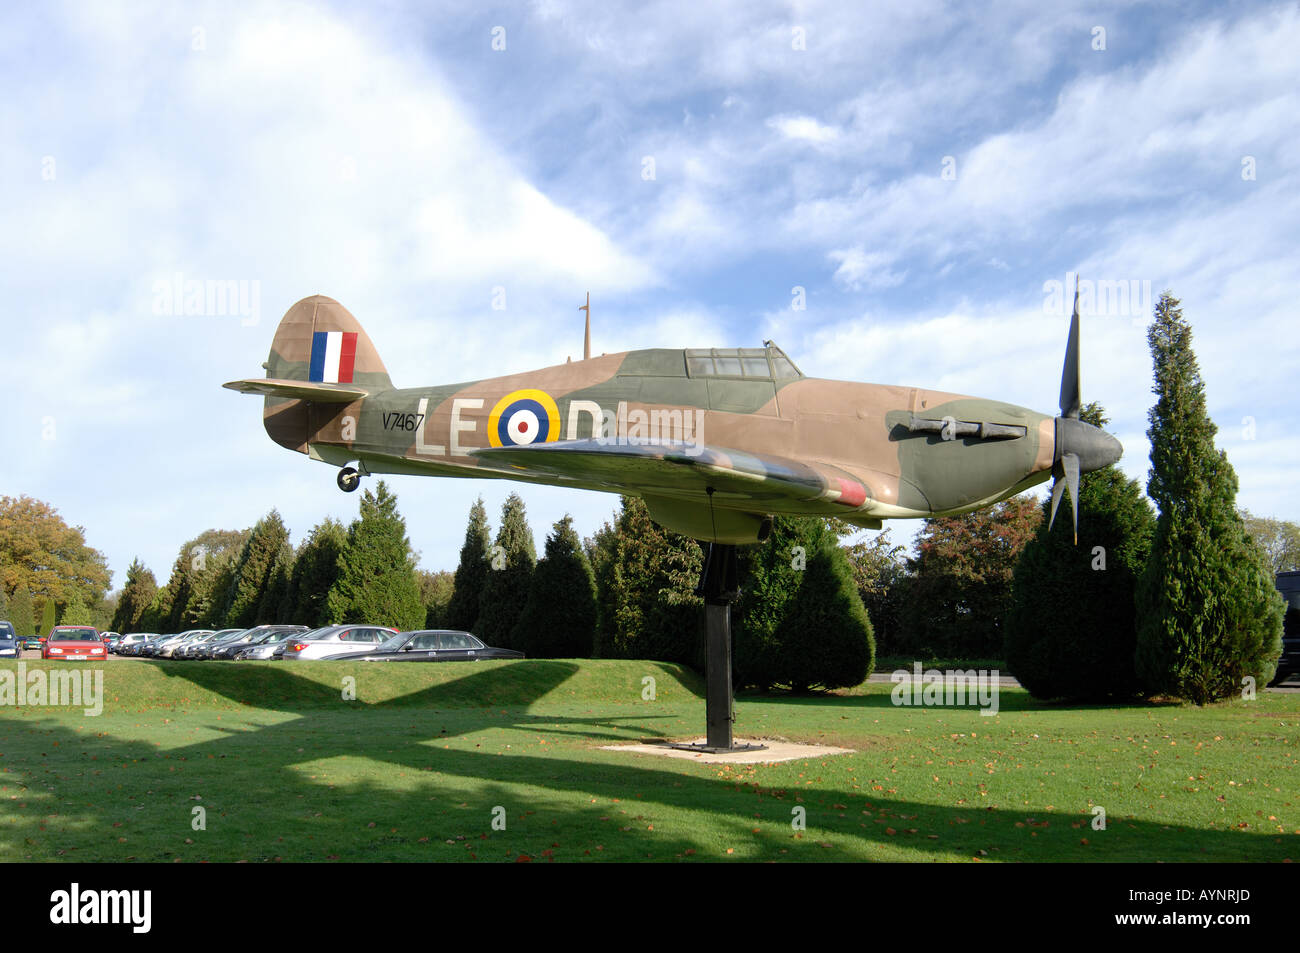 The first full-size gate guardian at the RAF headquarters in Naphill has been unveiled - Stock Image